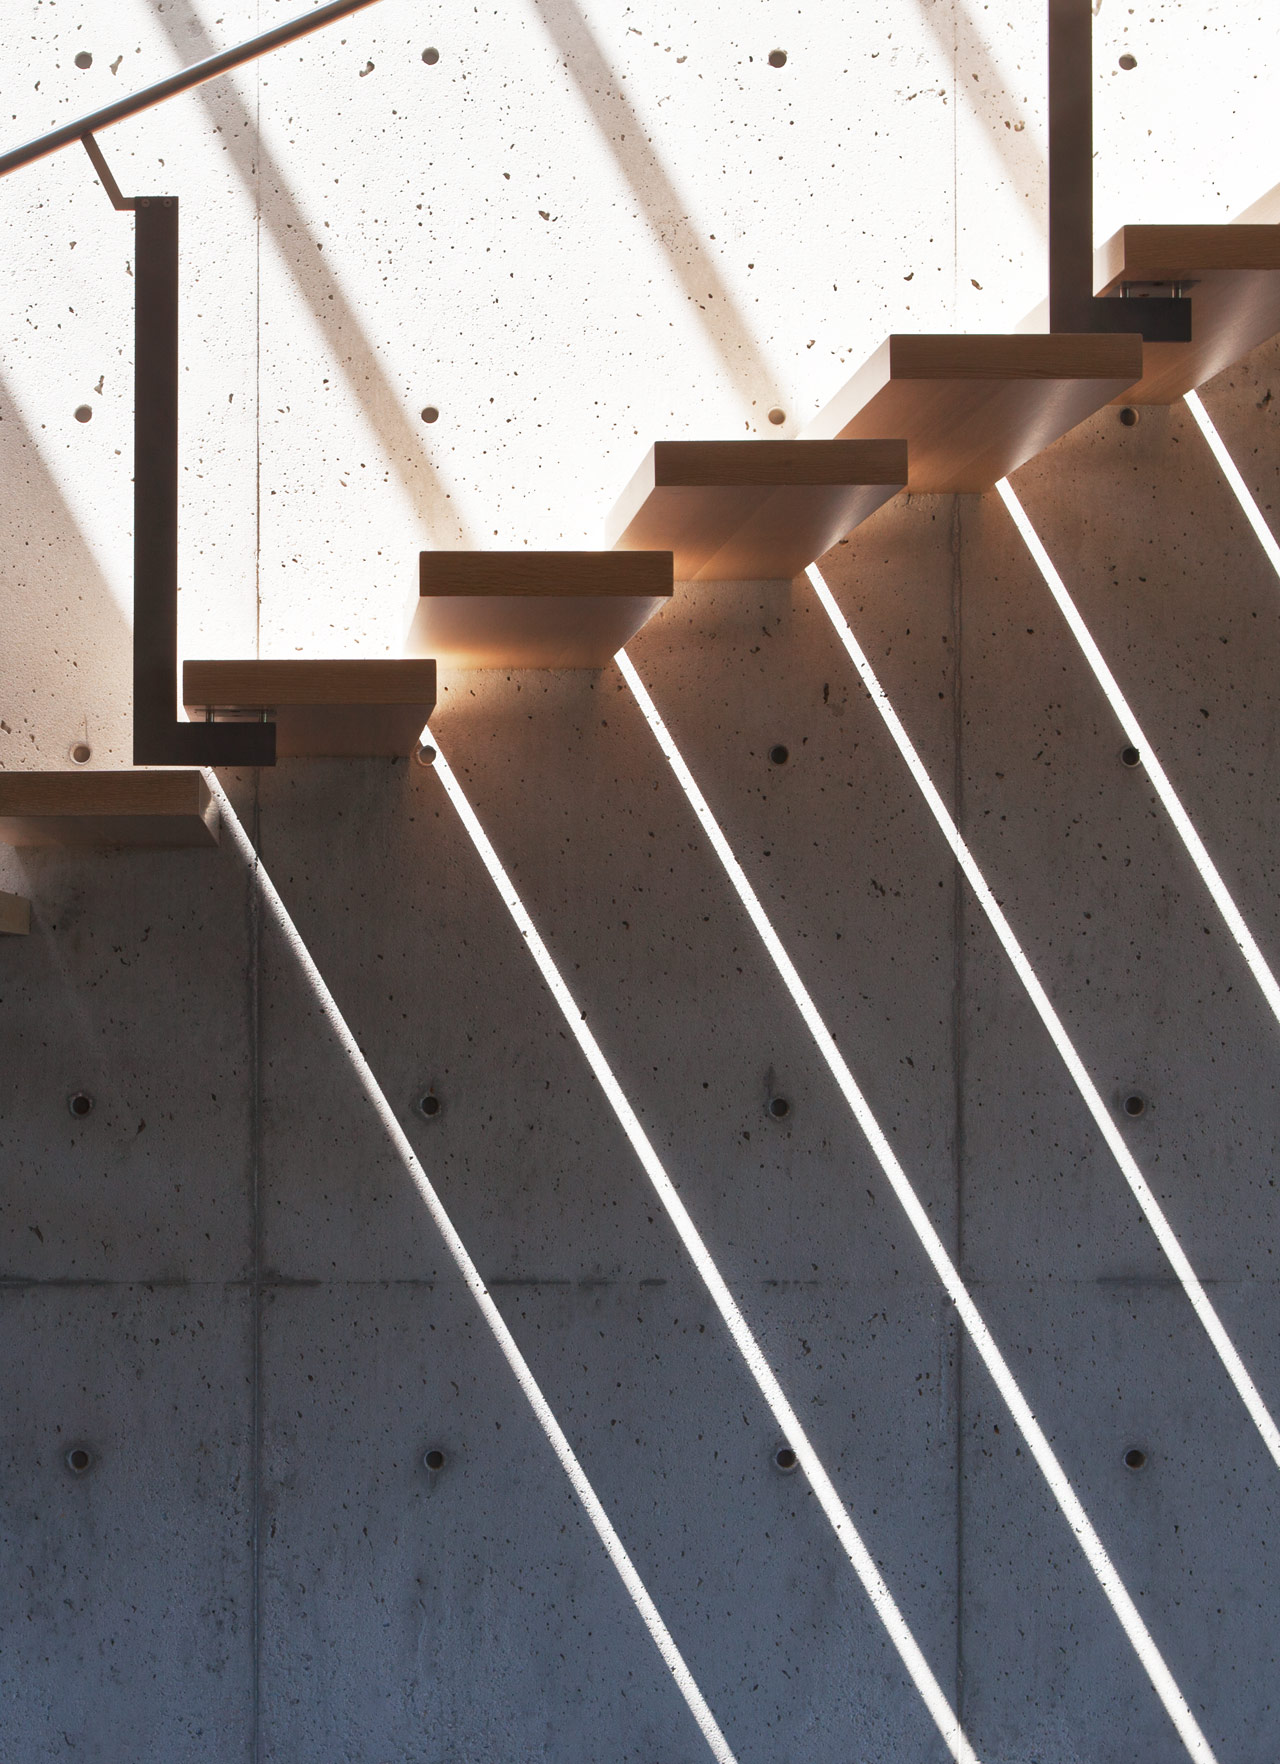 Light shining through slits in floating wood staircase against concrete wall.